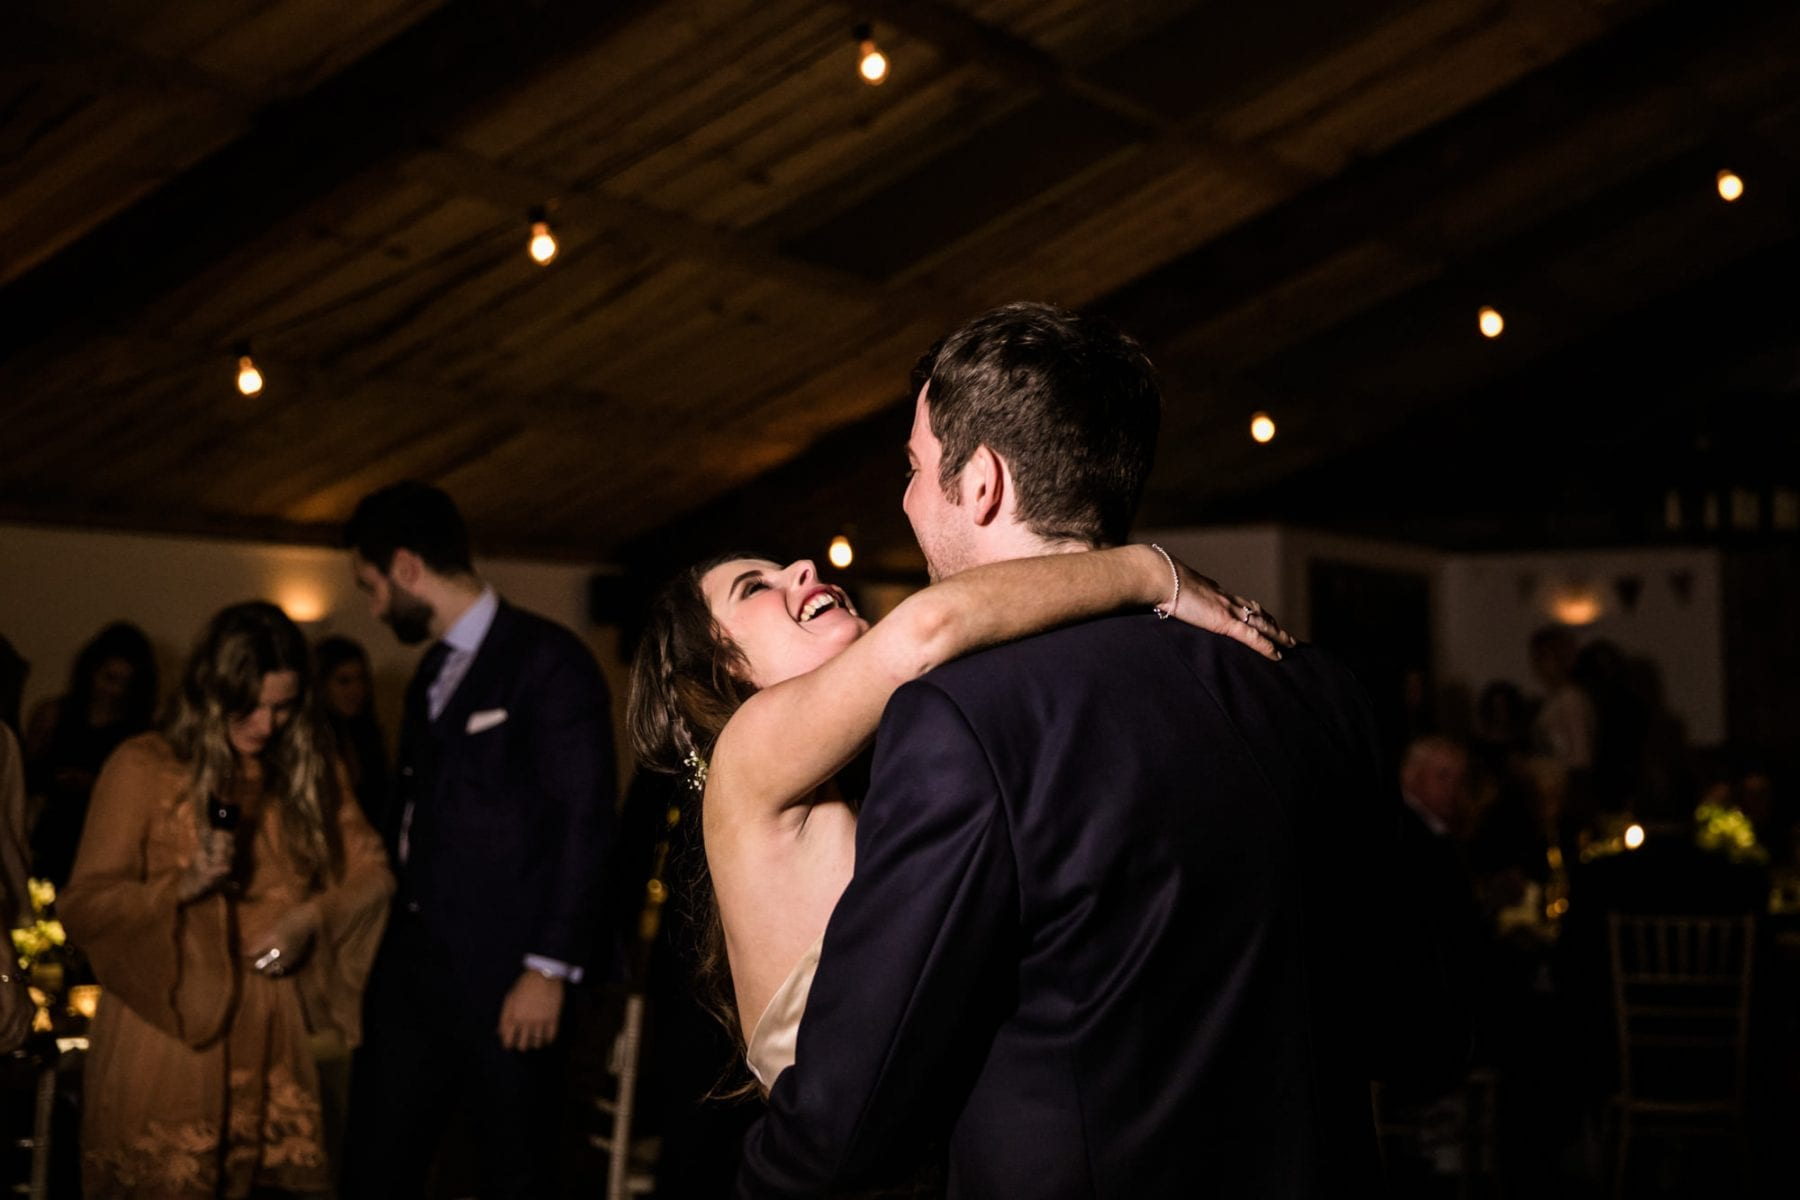 Owen House Barn Fun Wedding Photographer